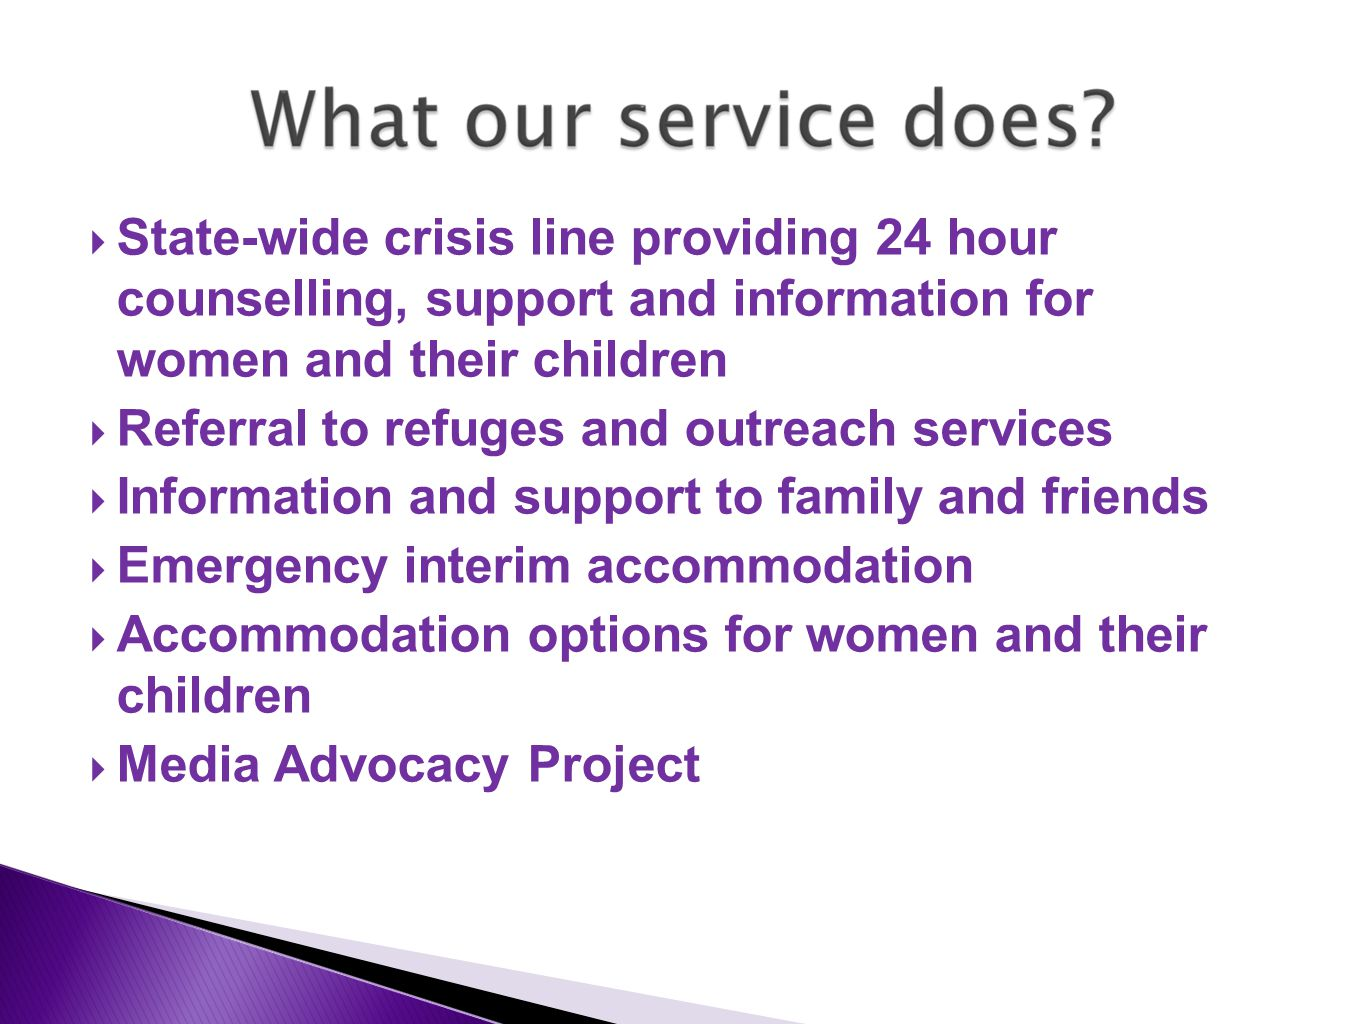  State-wide crisis line providing 24 hour counselling, support and information for women and their children  Referral to refuges and outreach services  Information and support to family and friends  Emergency interim accommodation  Accommodation options for women and their children  Media Advocacy Project